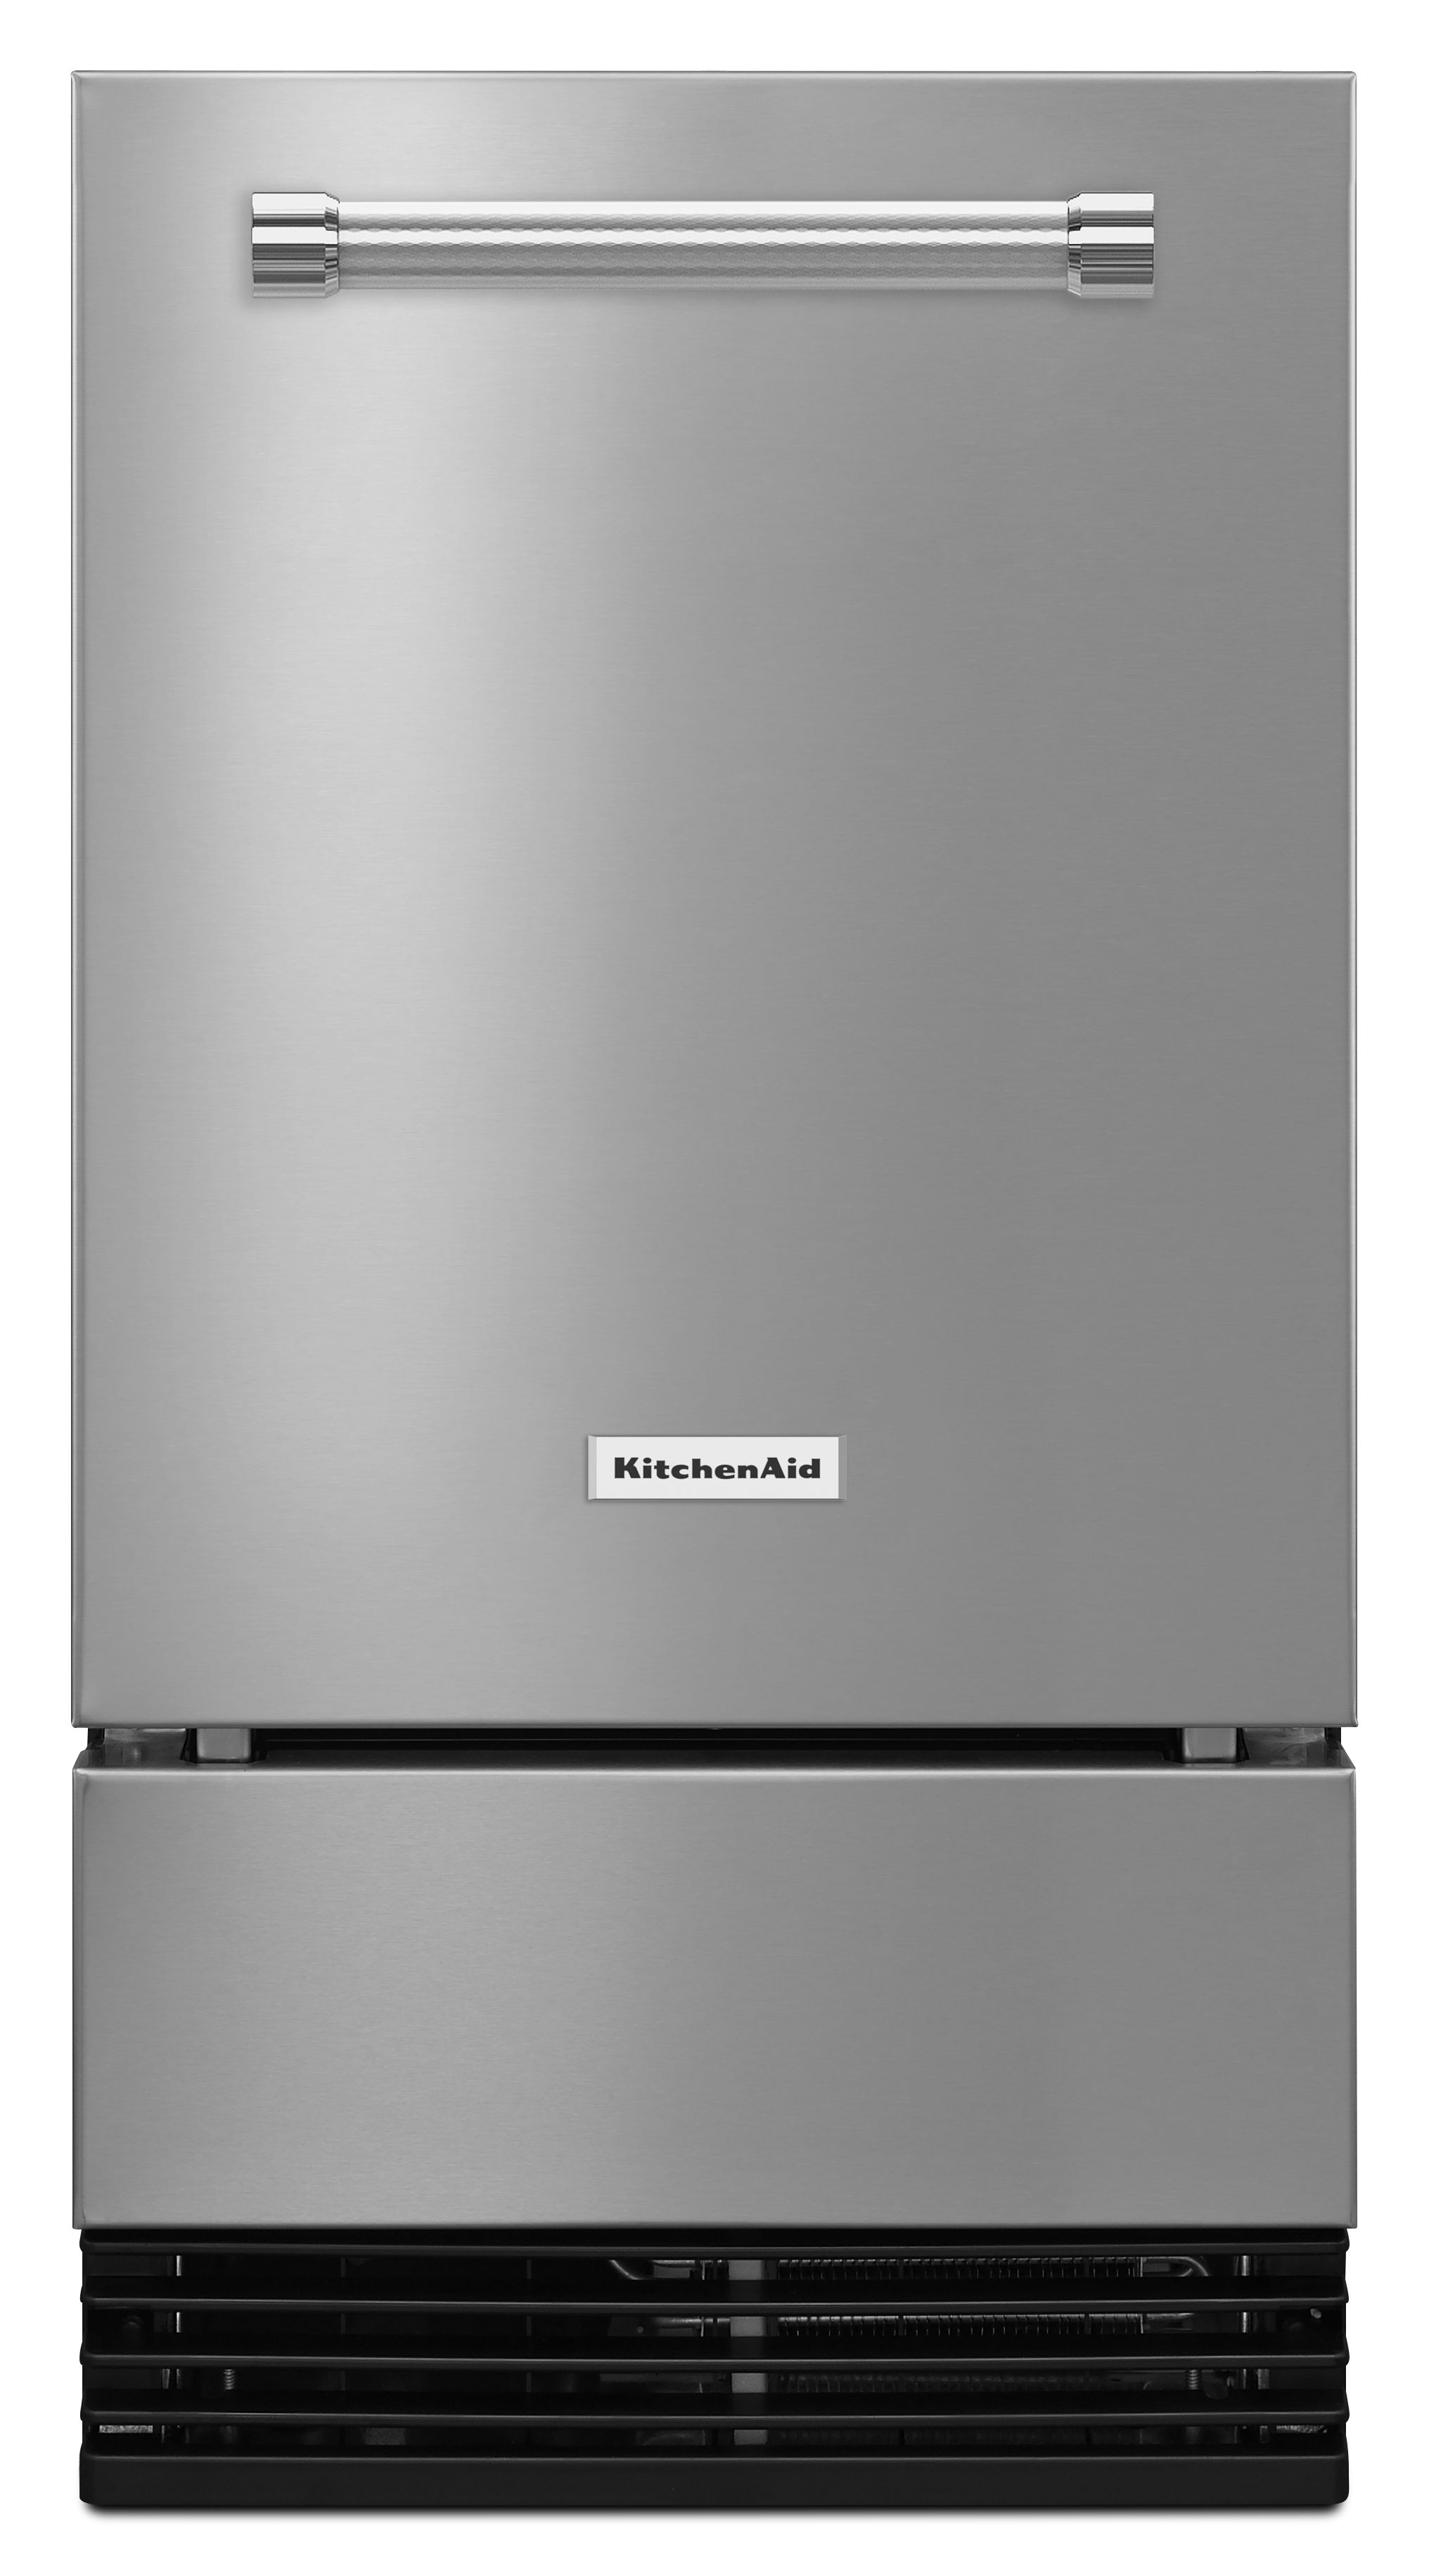 Kitchenaid Refrigerator Ice Maker Replacement Wow Blog